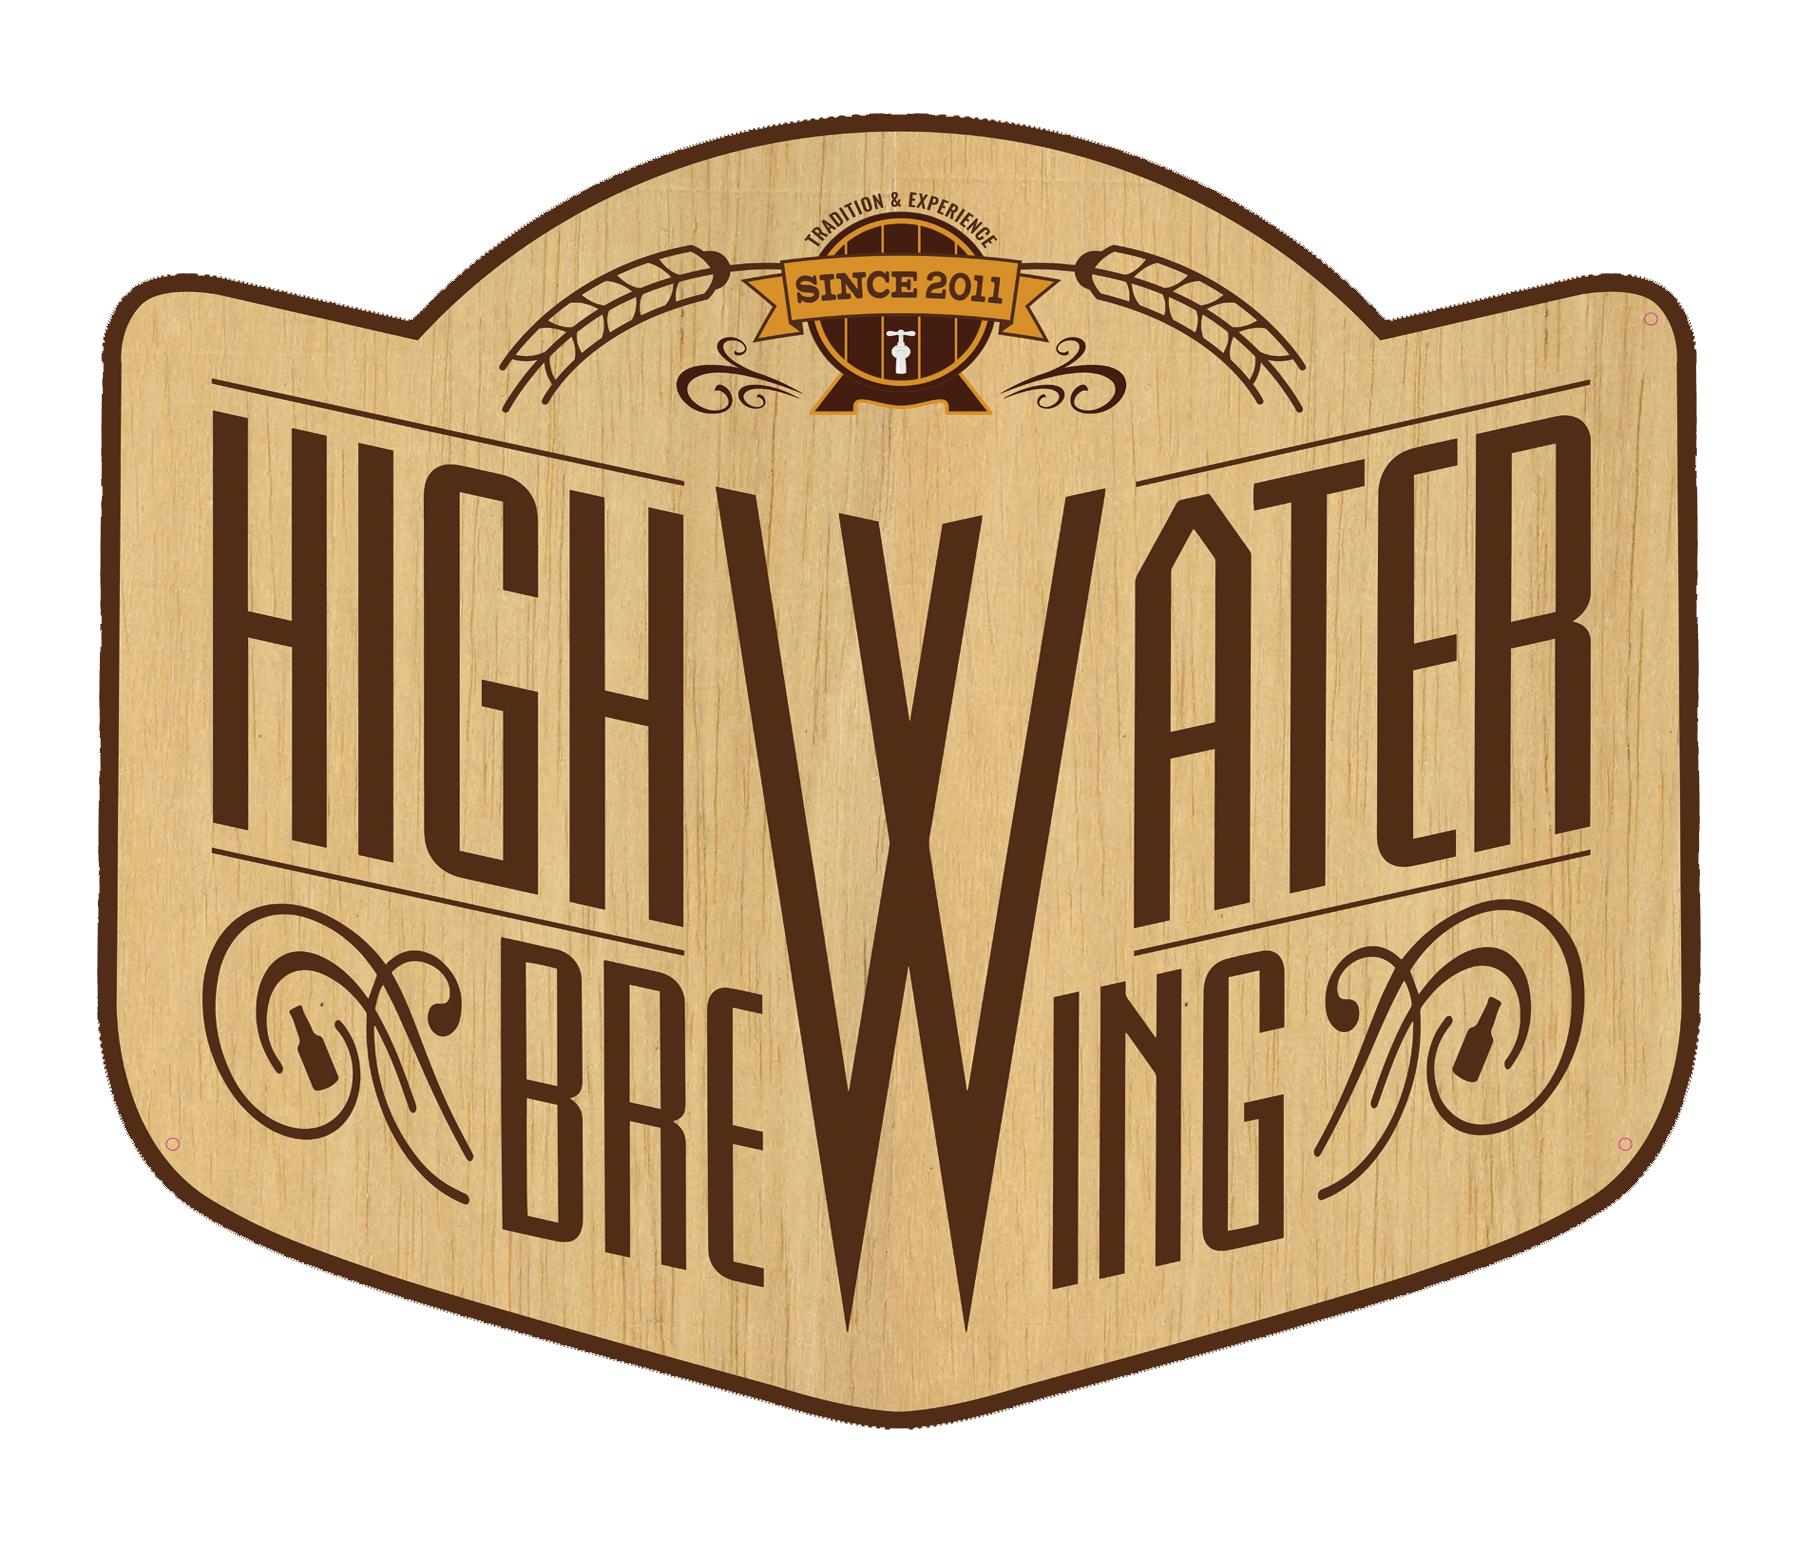 HighwaterBrewing-logo.png